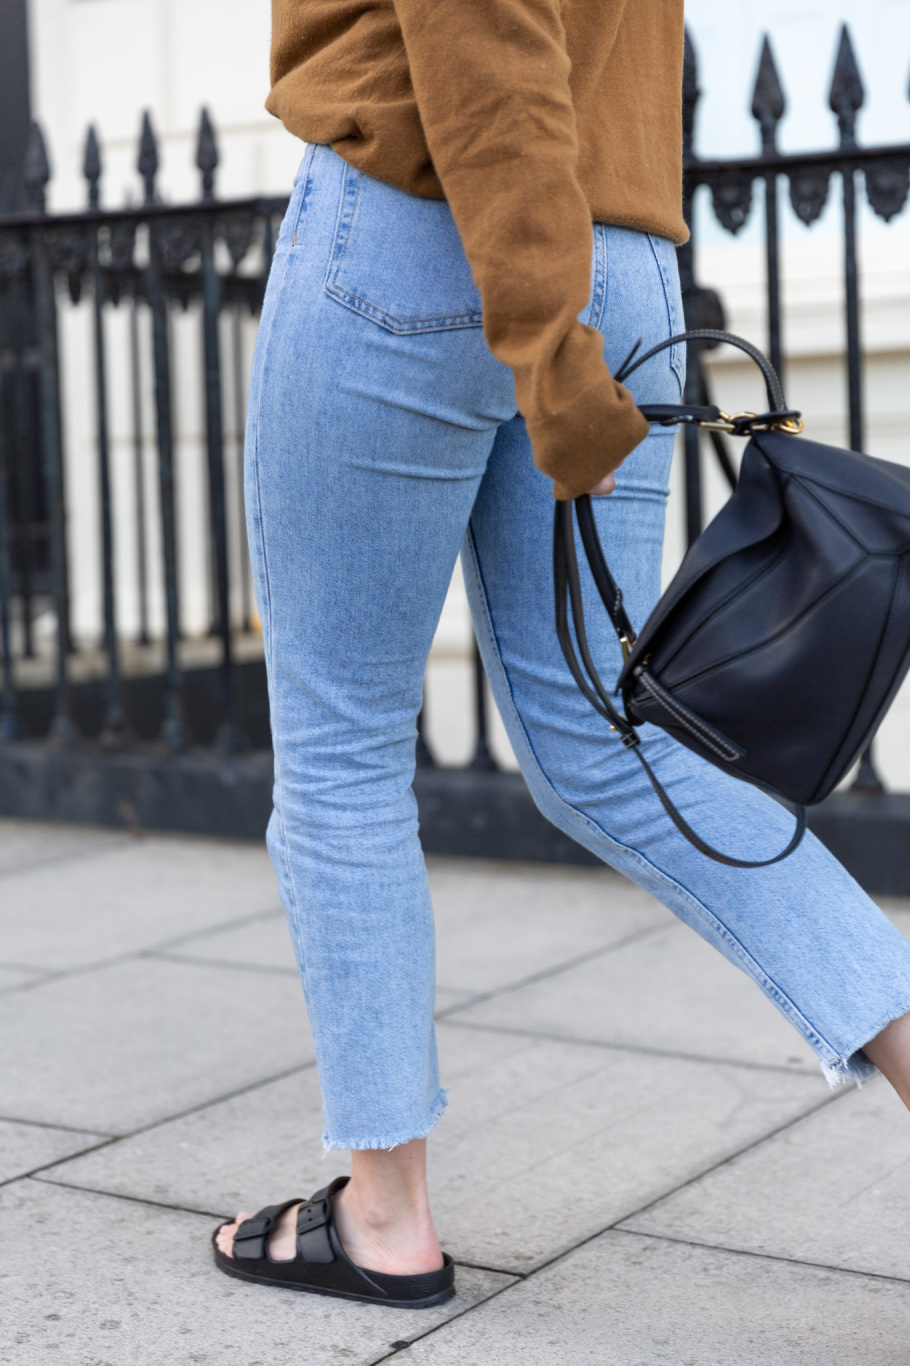 A close-up of Anna's jeans and sandals.